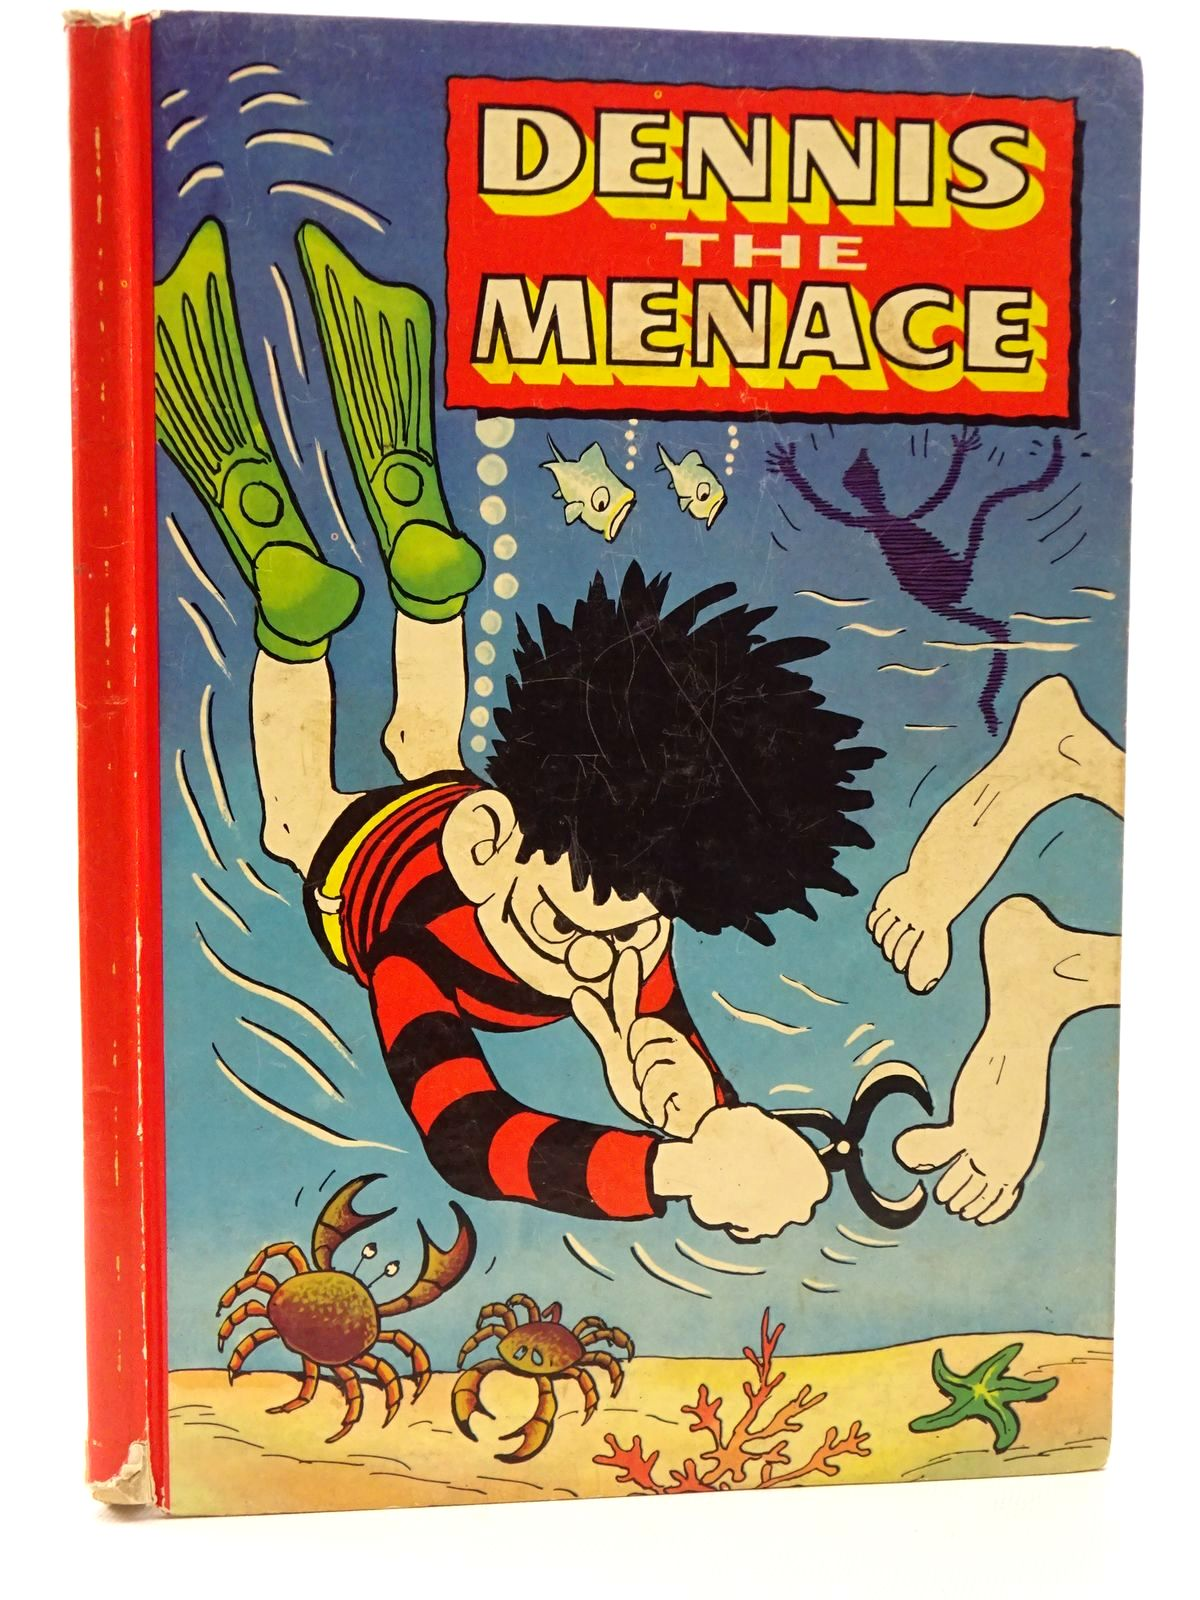 Photo of DENNIS THE MENACE 1960 published by D.C. Thomson & Co Ltd. (STOCK CODE: 2124259)  for sale by Stella & Rose's Books